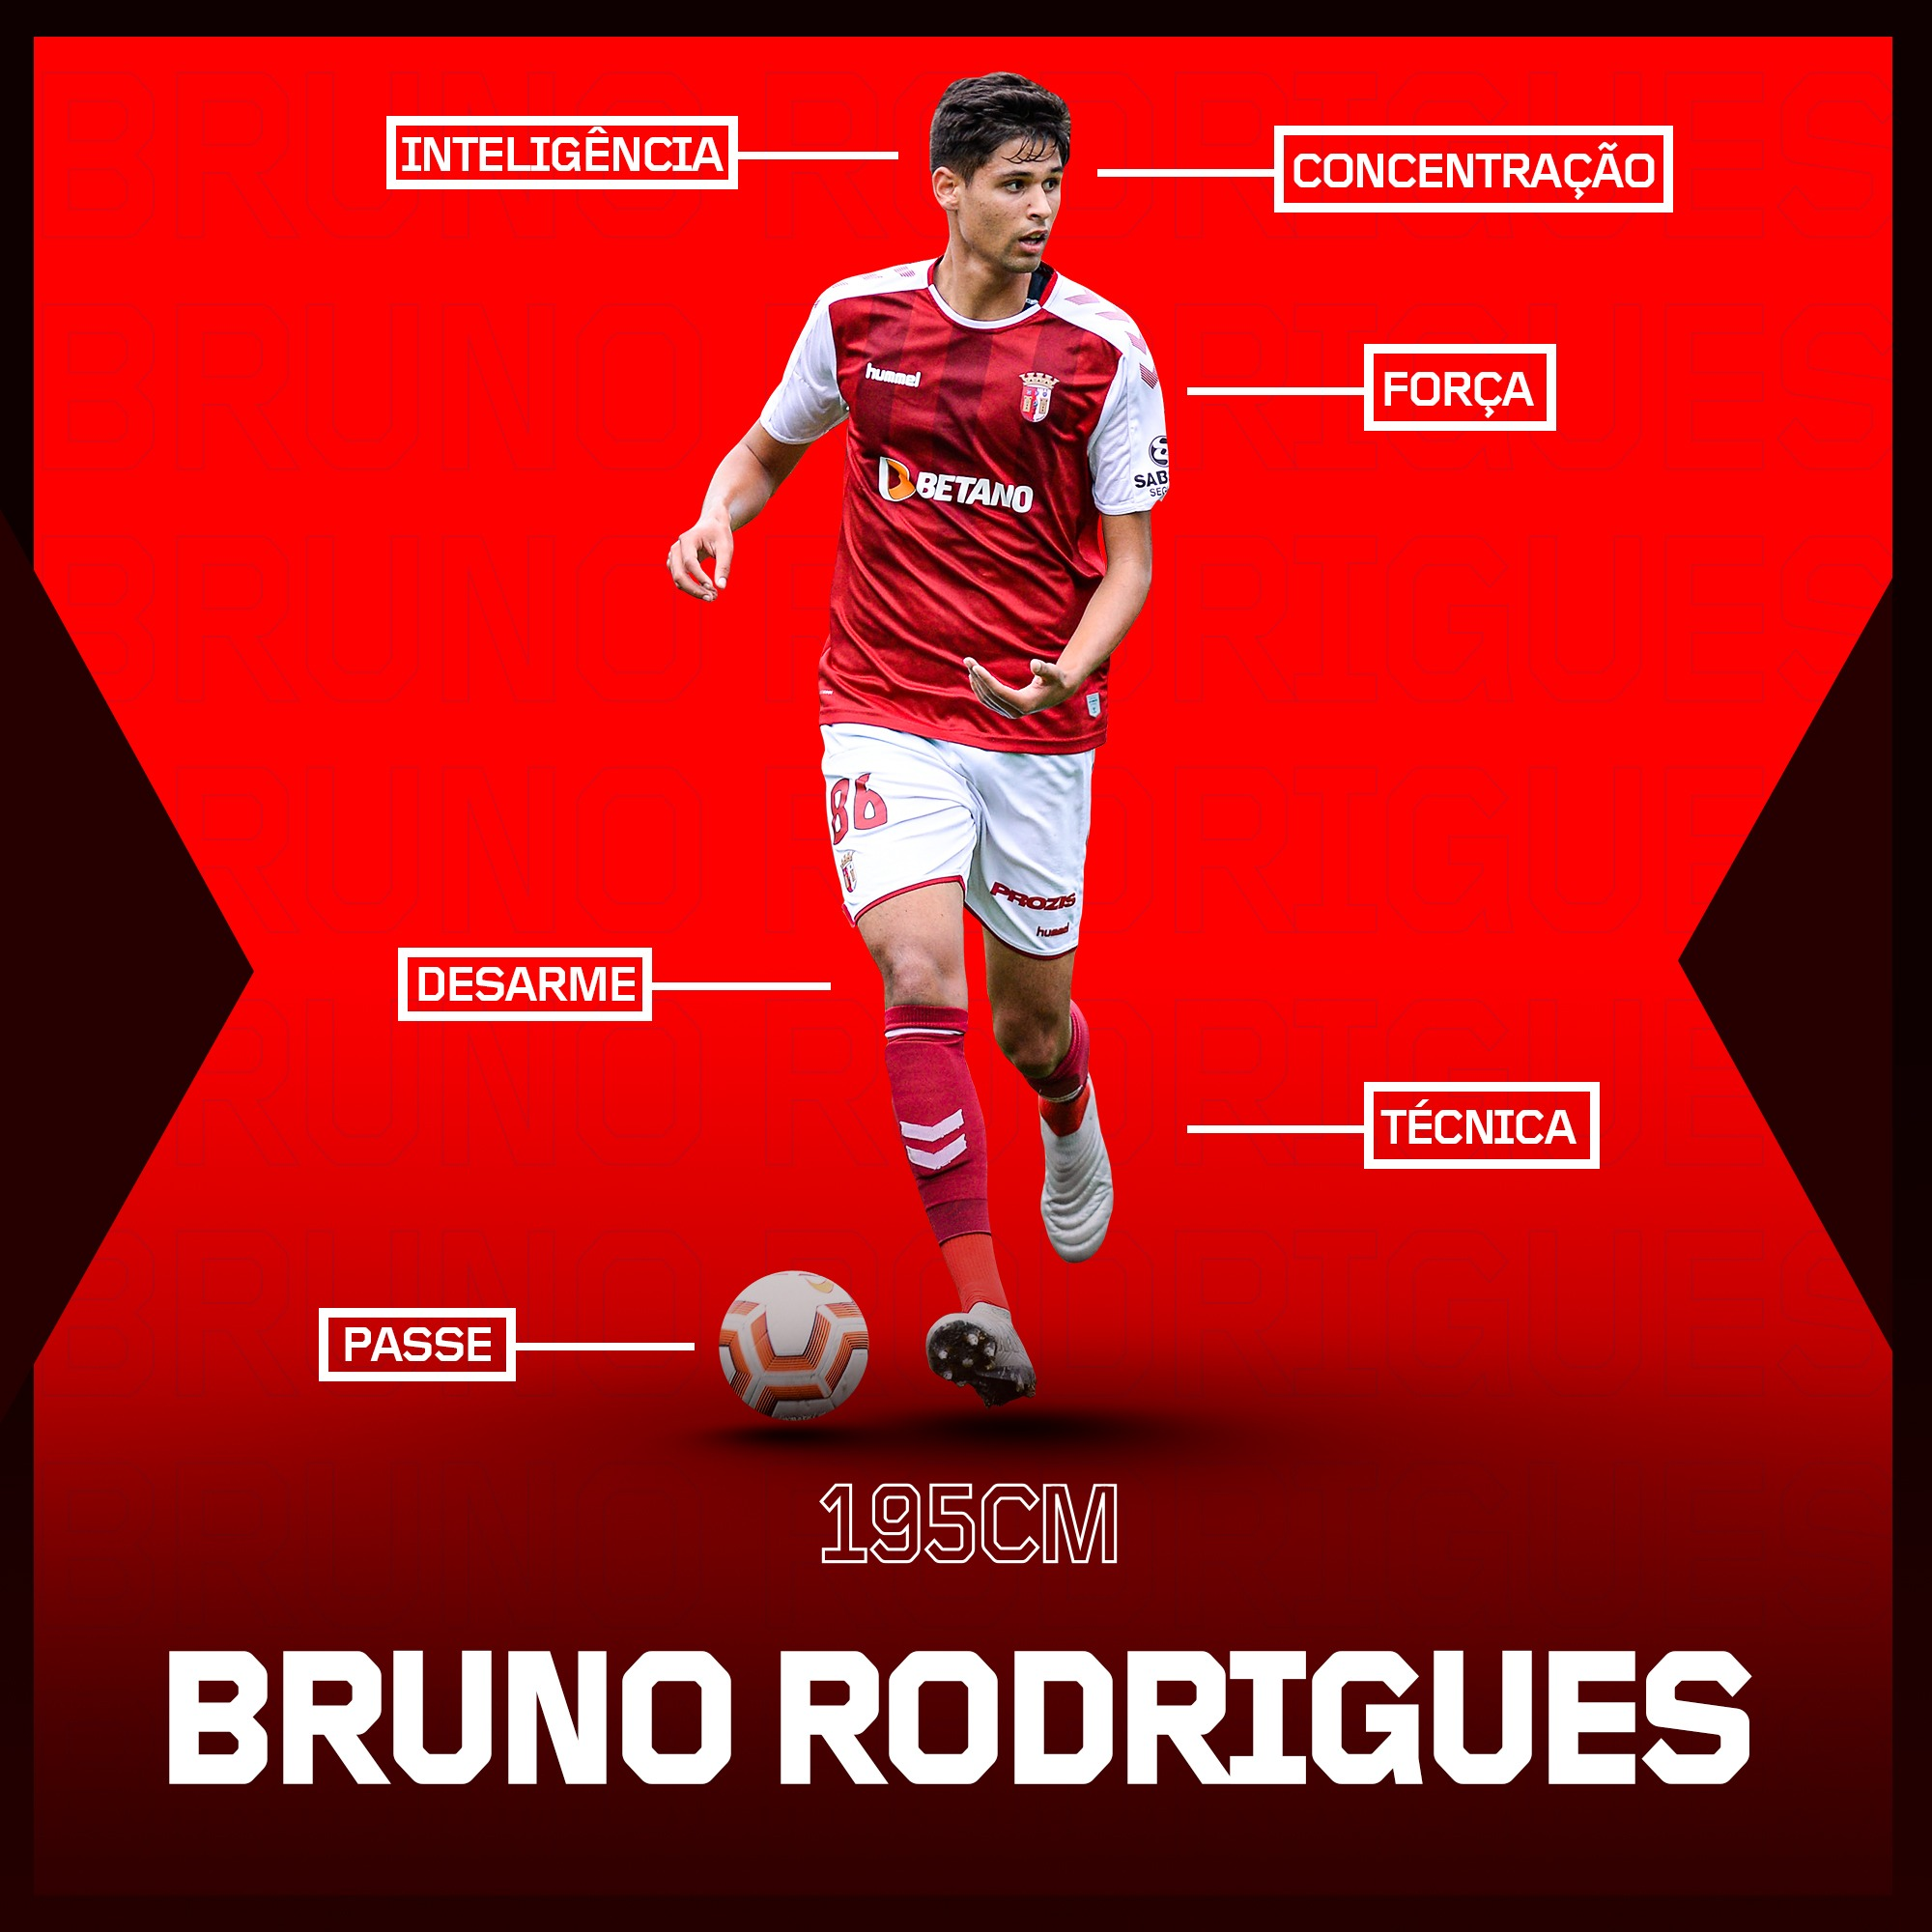 Bruno Rodrigues 11